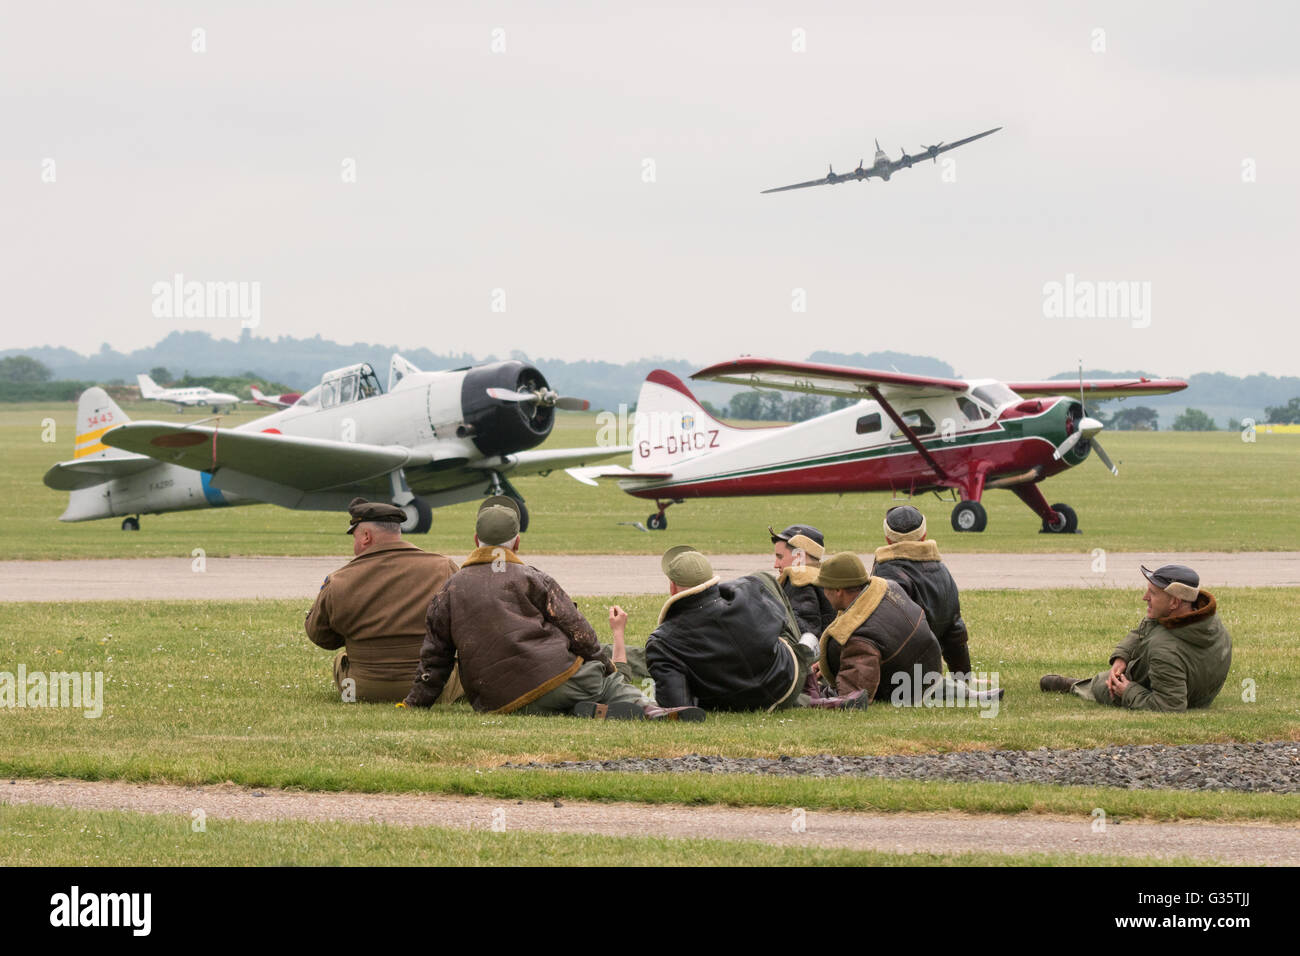 Scene at the Duxford American airshow - airmen in uniform and WW2 planes, Duxford Imperial War Museum, UK - Stock Image